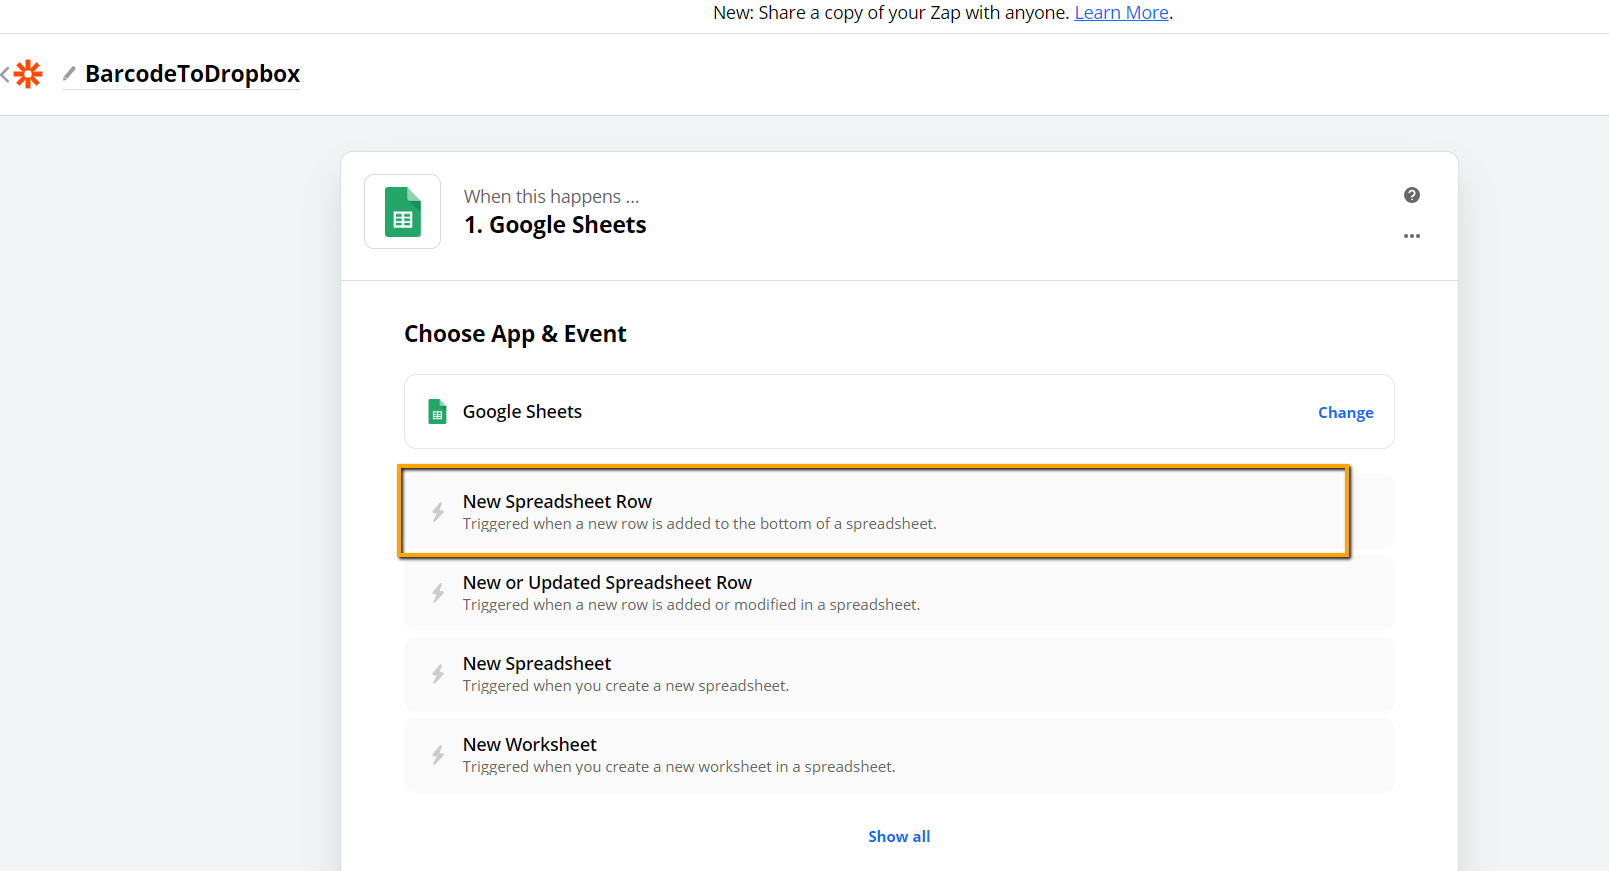 Select Google Sheets and New Spreadsheets Row As The Trigger